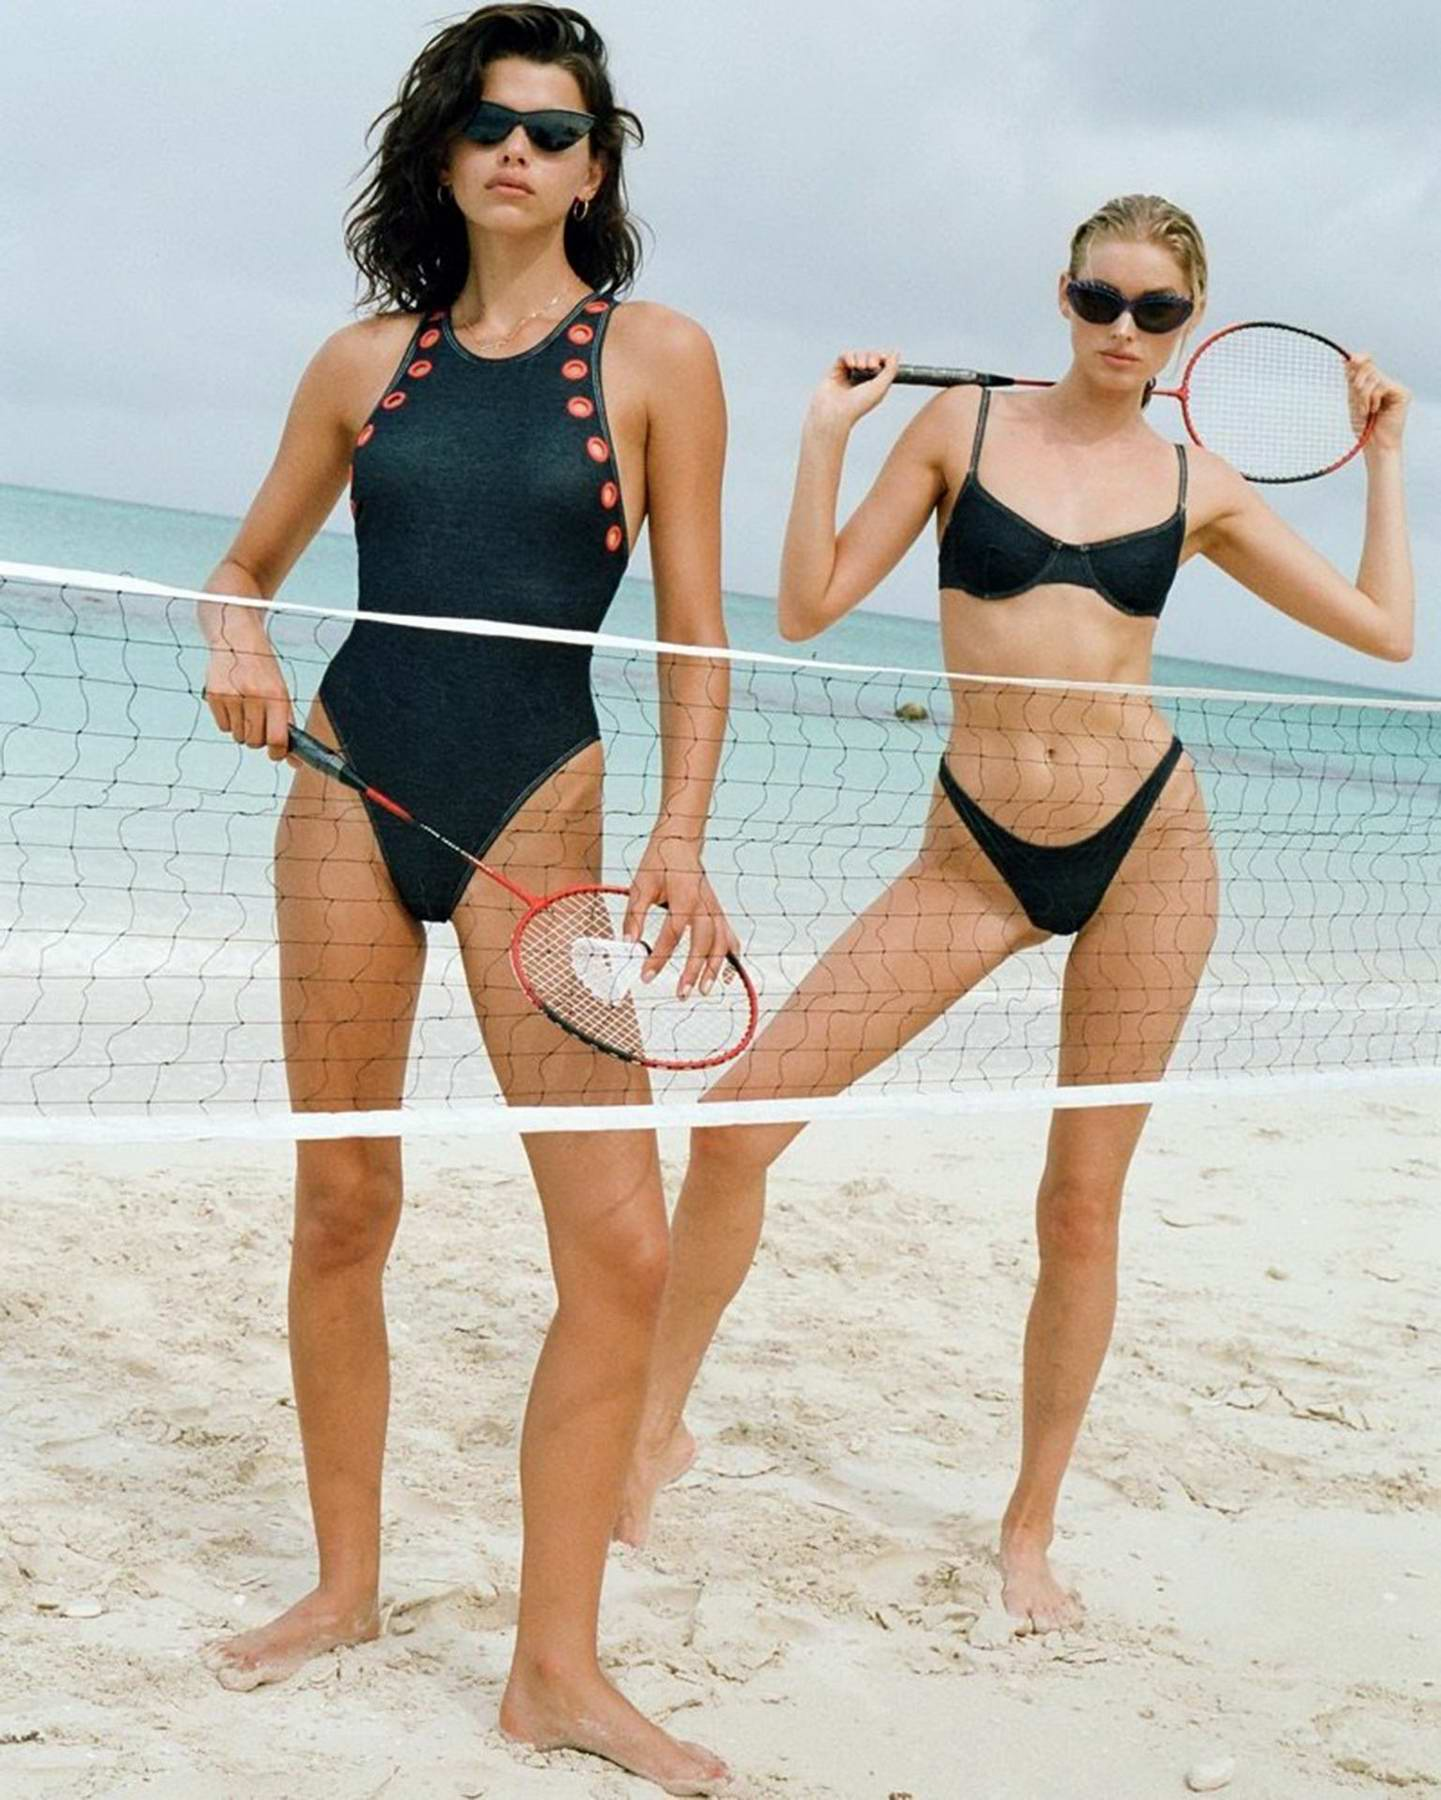 Elsa Hosk and Georgia Fowler poses in multiple swimwear during a new campaign shoot in Turks and Caicos Islands